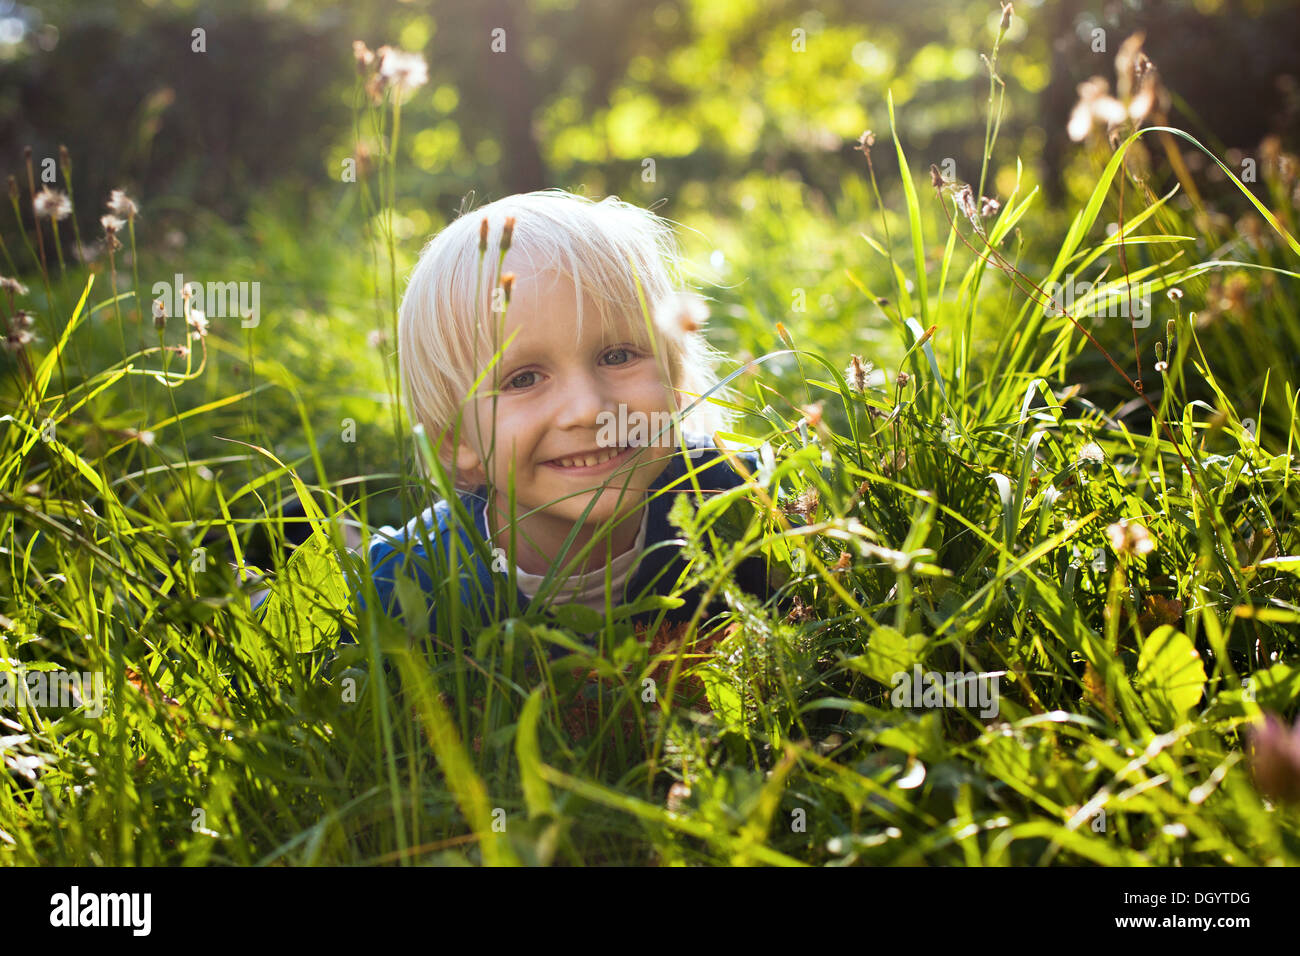 blond happy little boy in the grass - Stock Image